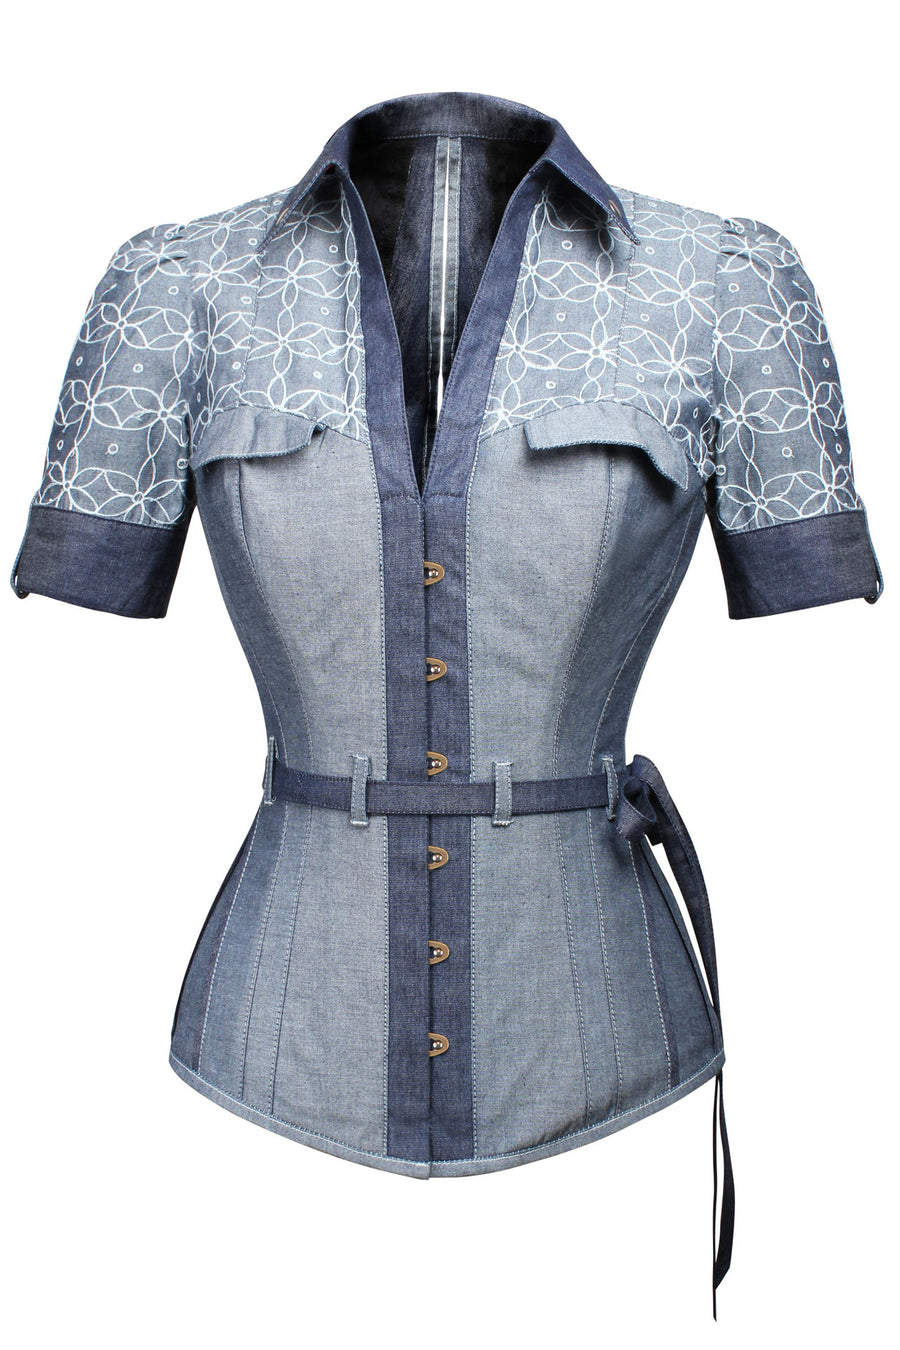 Blue Denim Corset Shirt with Elasticated Back